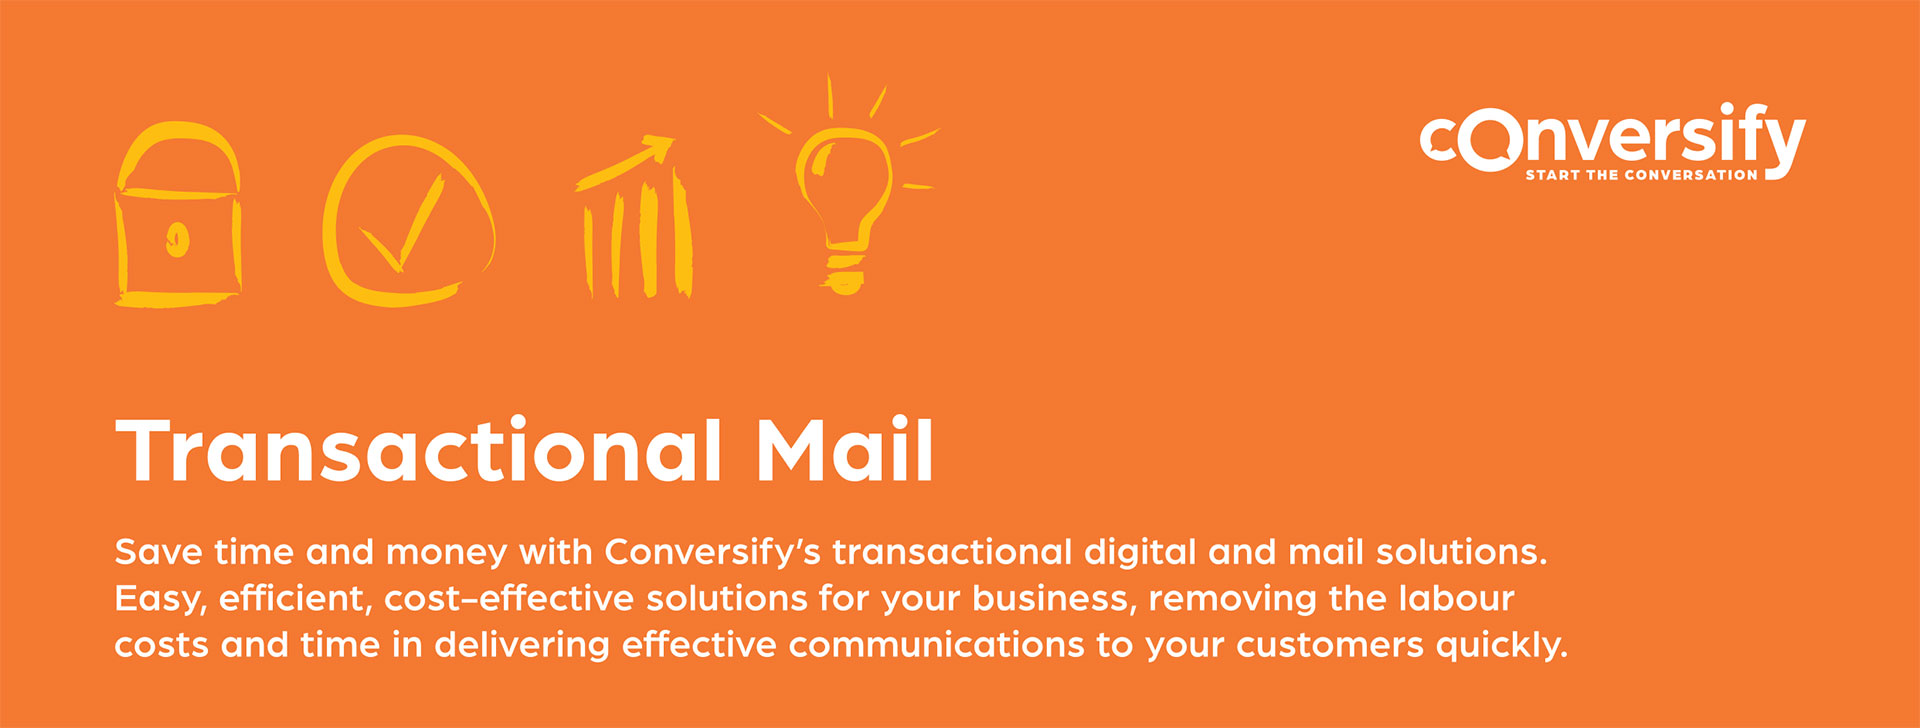 Transactional Mail Top Banner